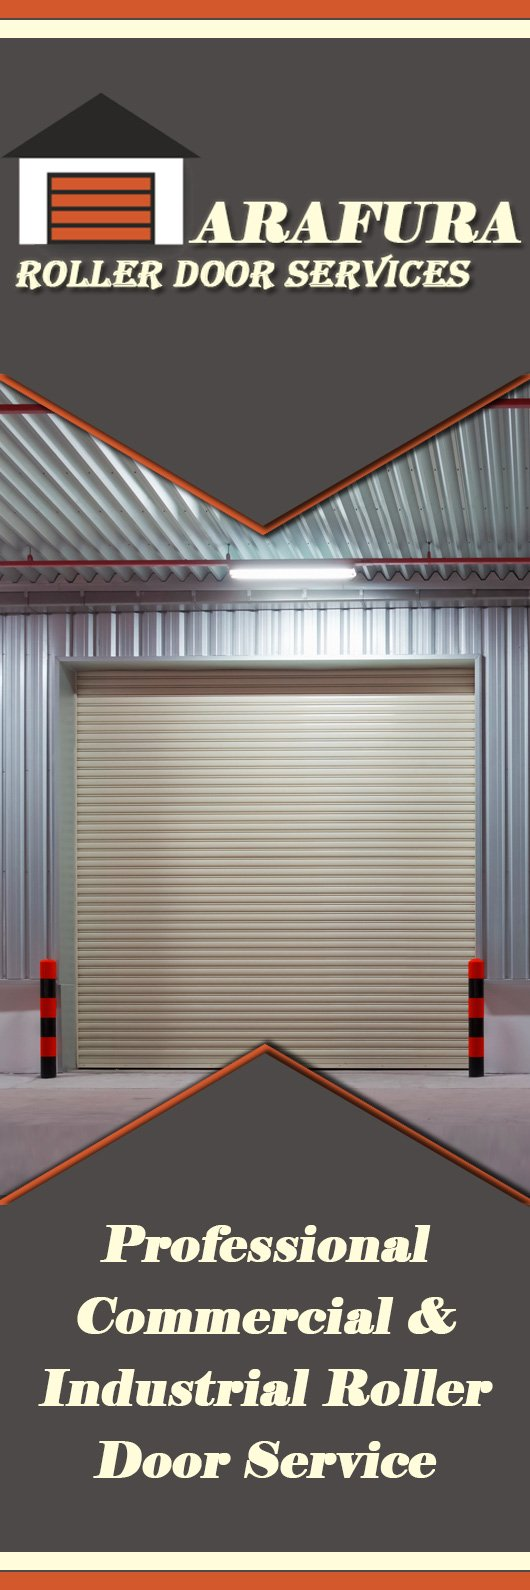 Arafura roller door services roller shutters roadside mail box arafura roller door services promotion rubansaba